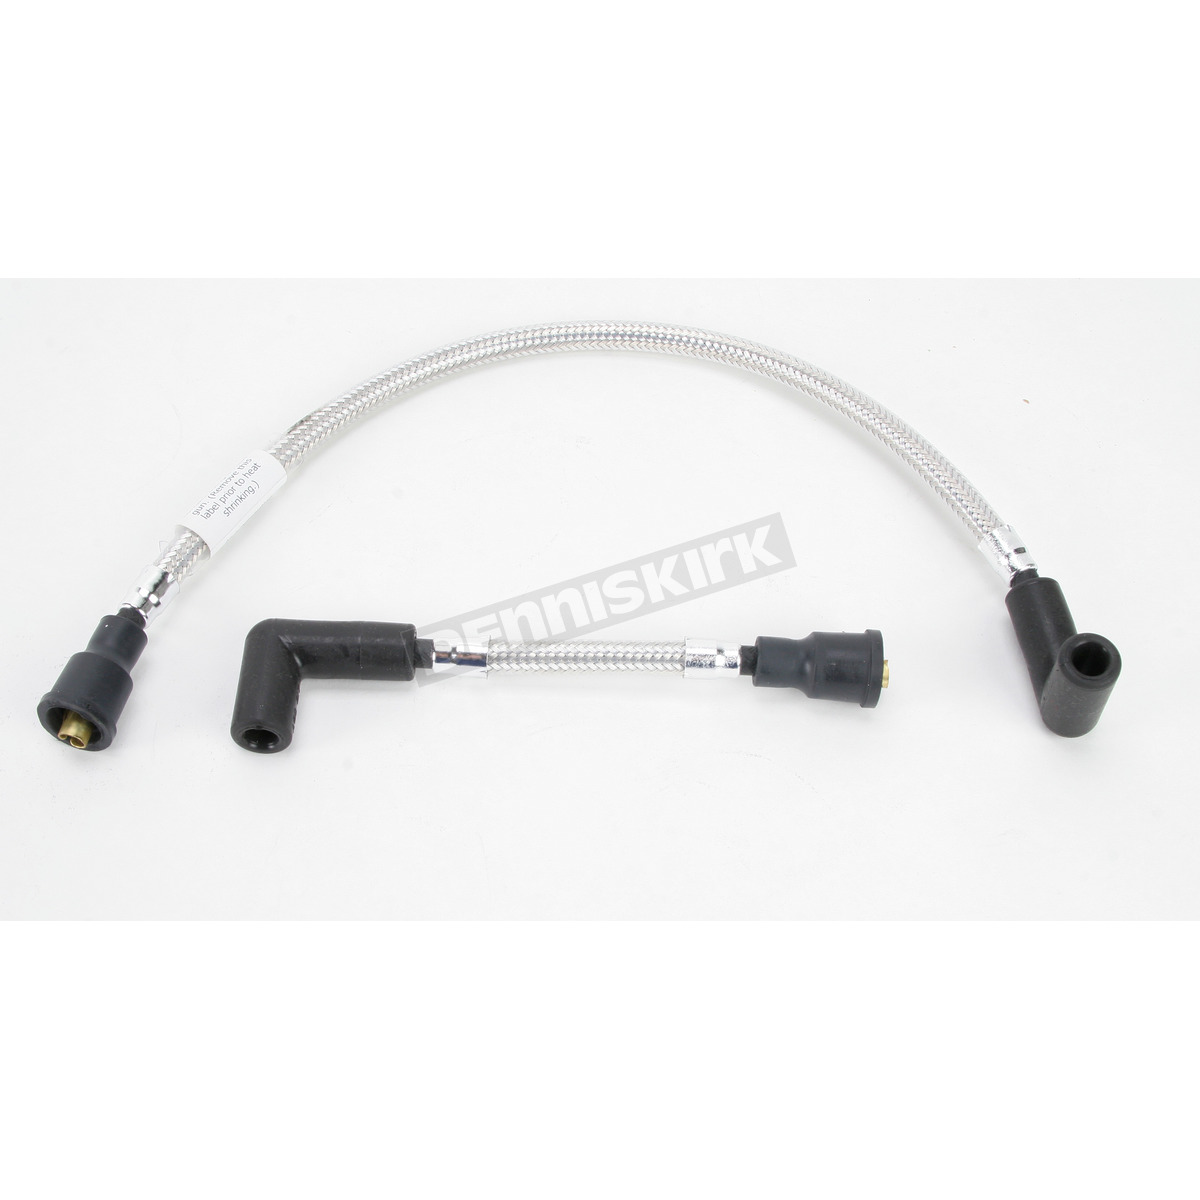 Sterling Chromite II Spark Plug Wires - 3023S on